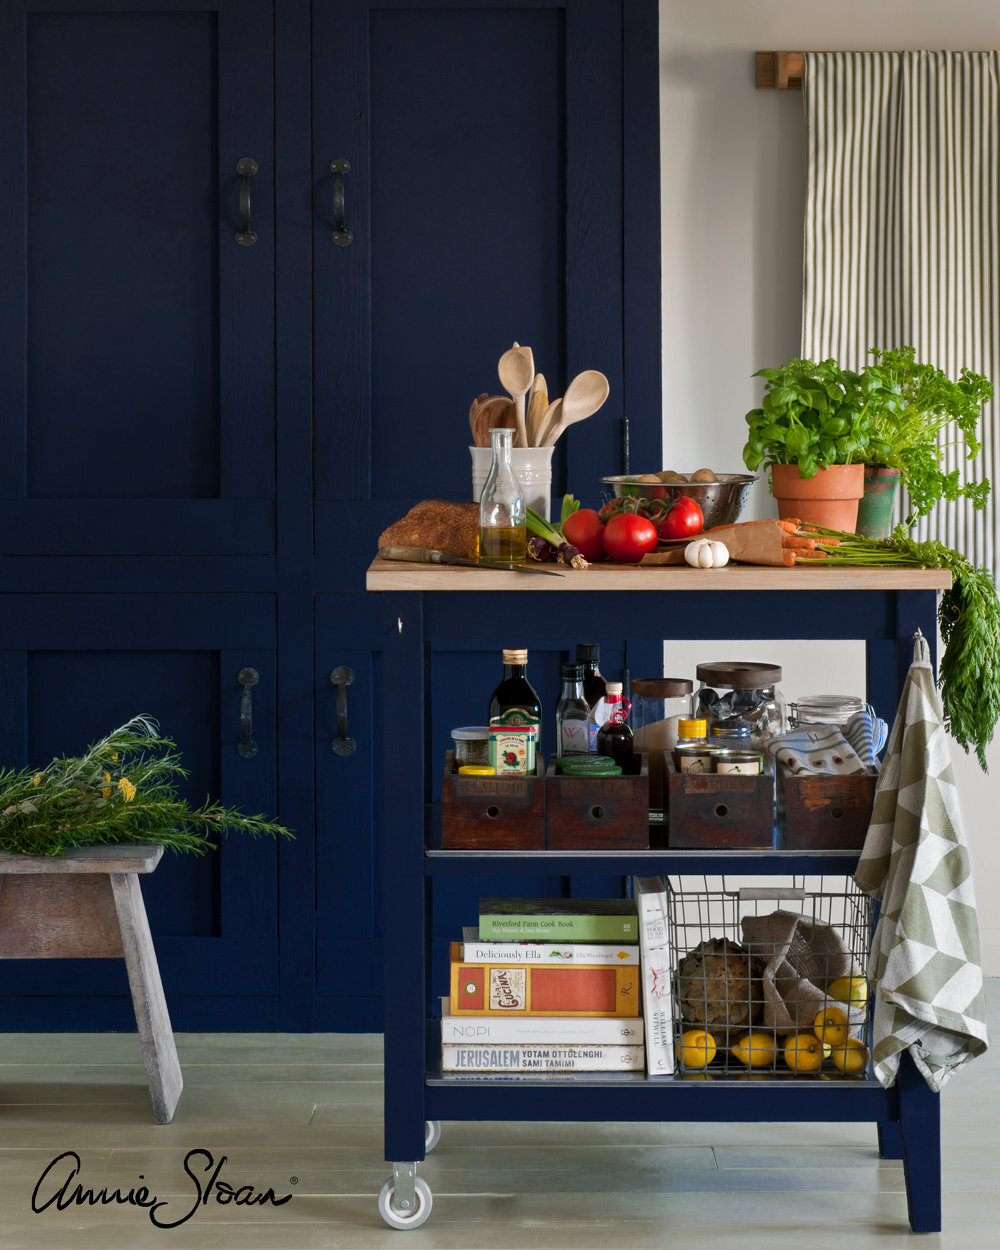 Oxford-Navy-kitchen-image-1-1